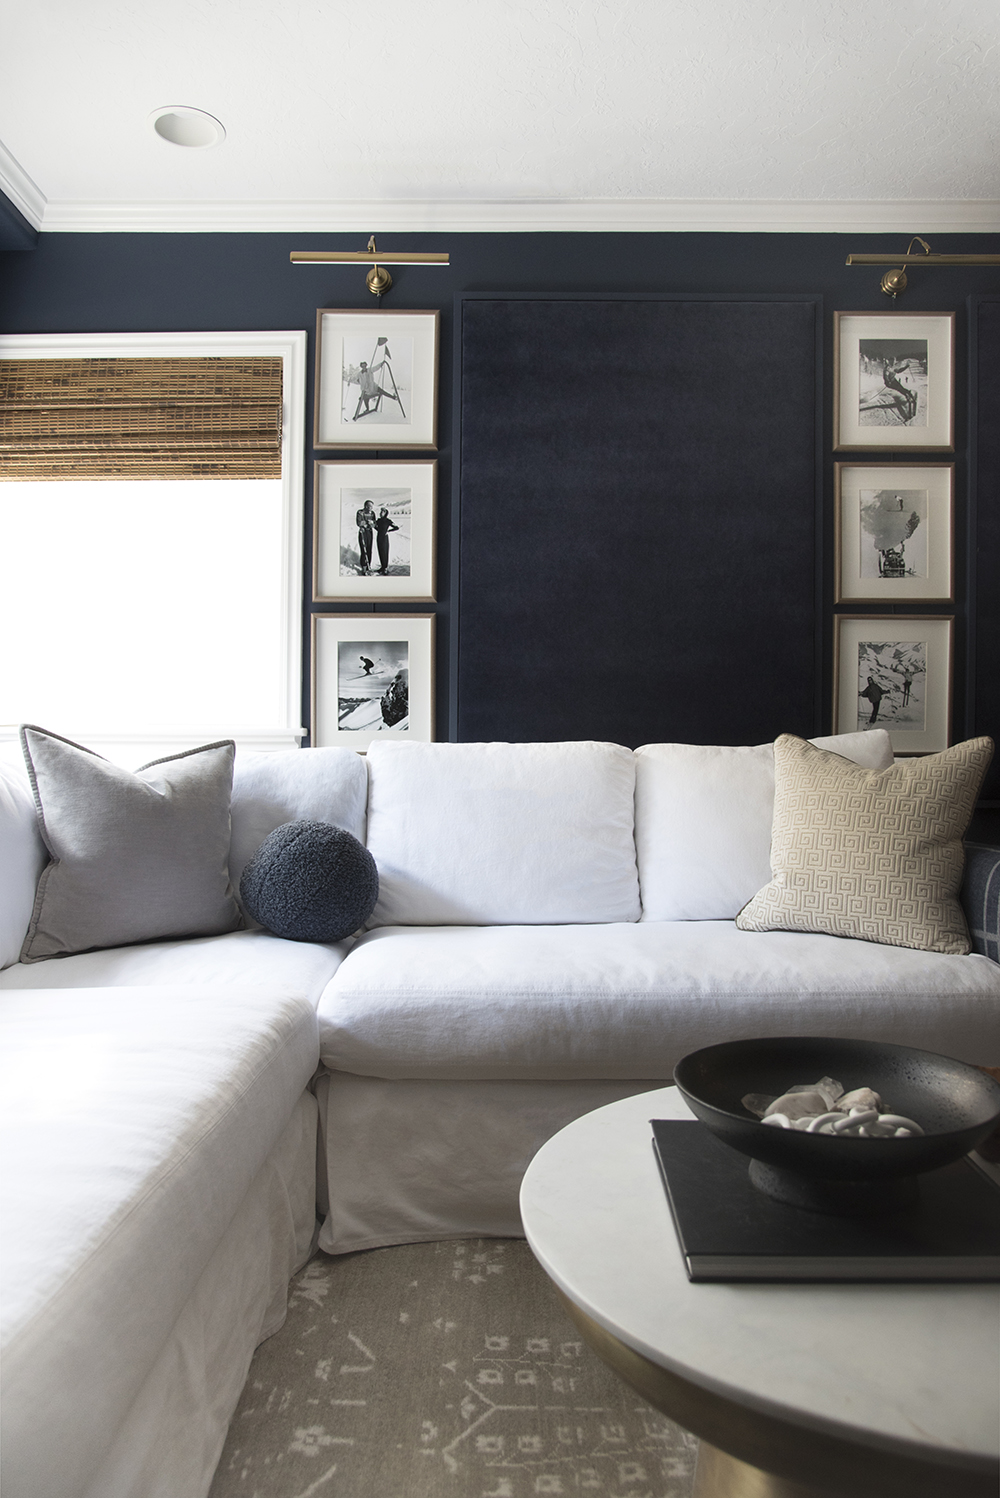 Timeless vs. Trendy: Choosing the Best Finishes & Furnishings for Your Home - roomfortuesday.com